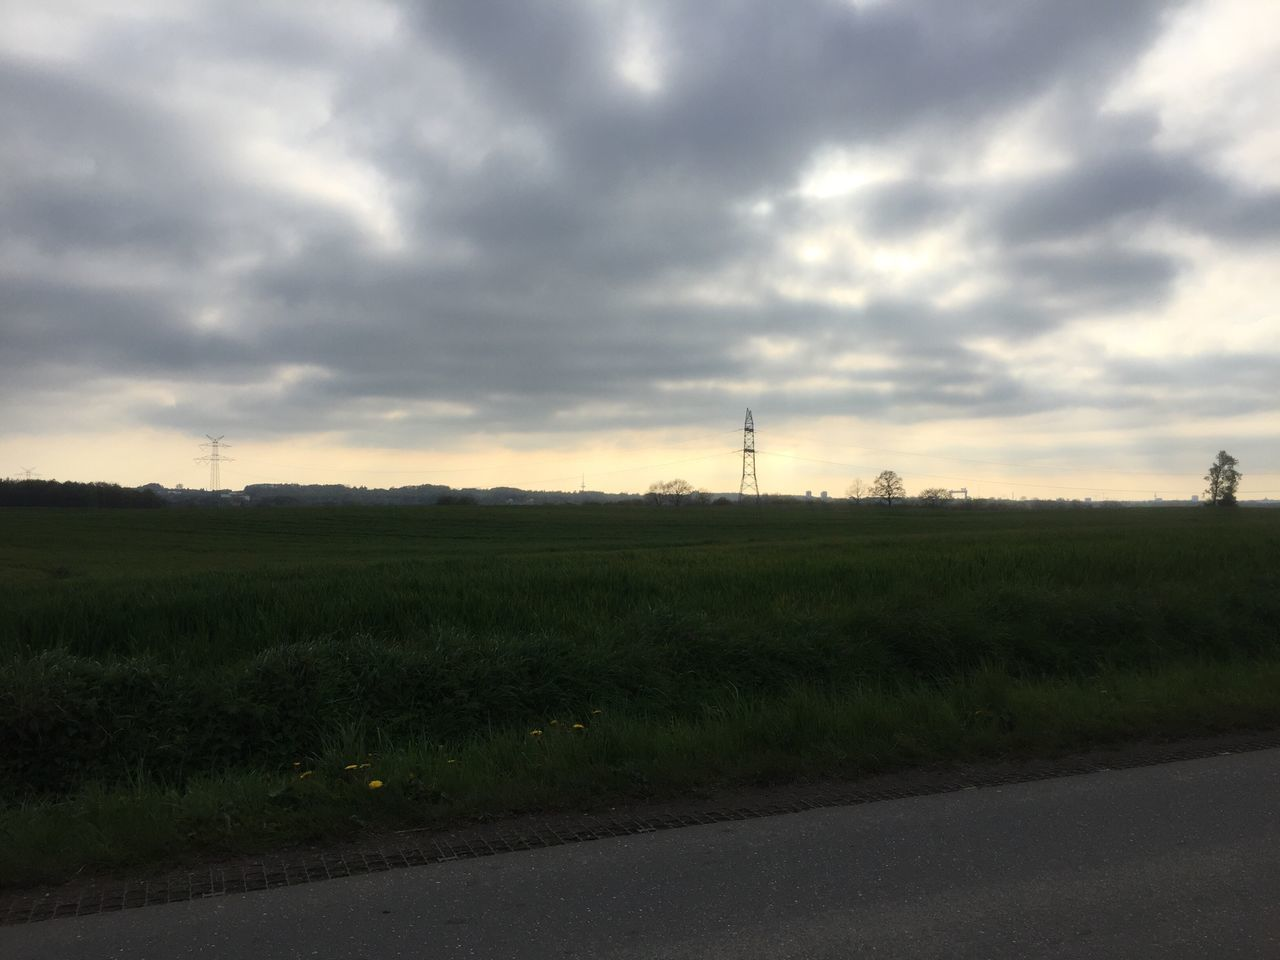 cloud - sky, sky, nature, field, sunset, tranquility, electricity pylon, tranquil scene, no people, technology, fuel and power generation, electricity, silhouette, scenics, beauty in nature, outdoors, agriculture, landscape, day, alternative energy, wind turbine, wind power, windmill, architecture, industrial windmill